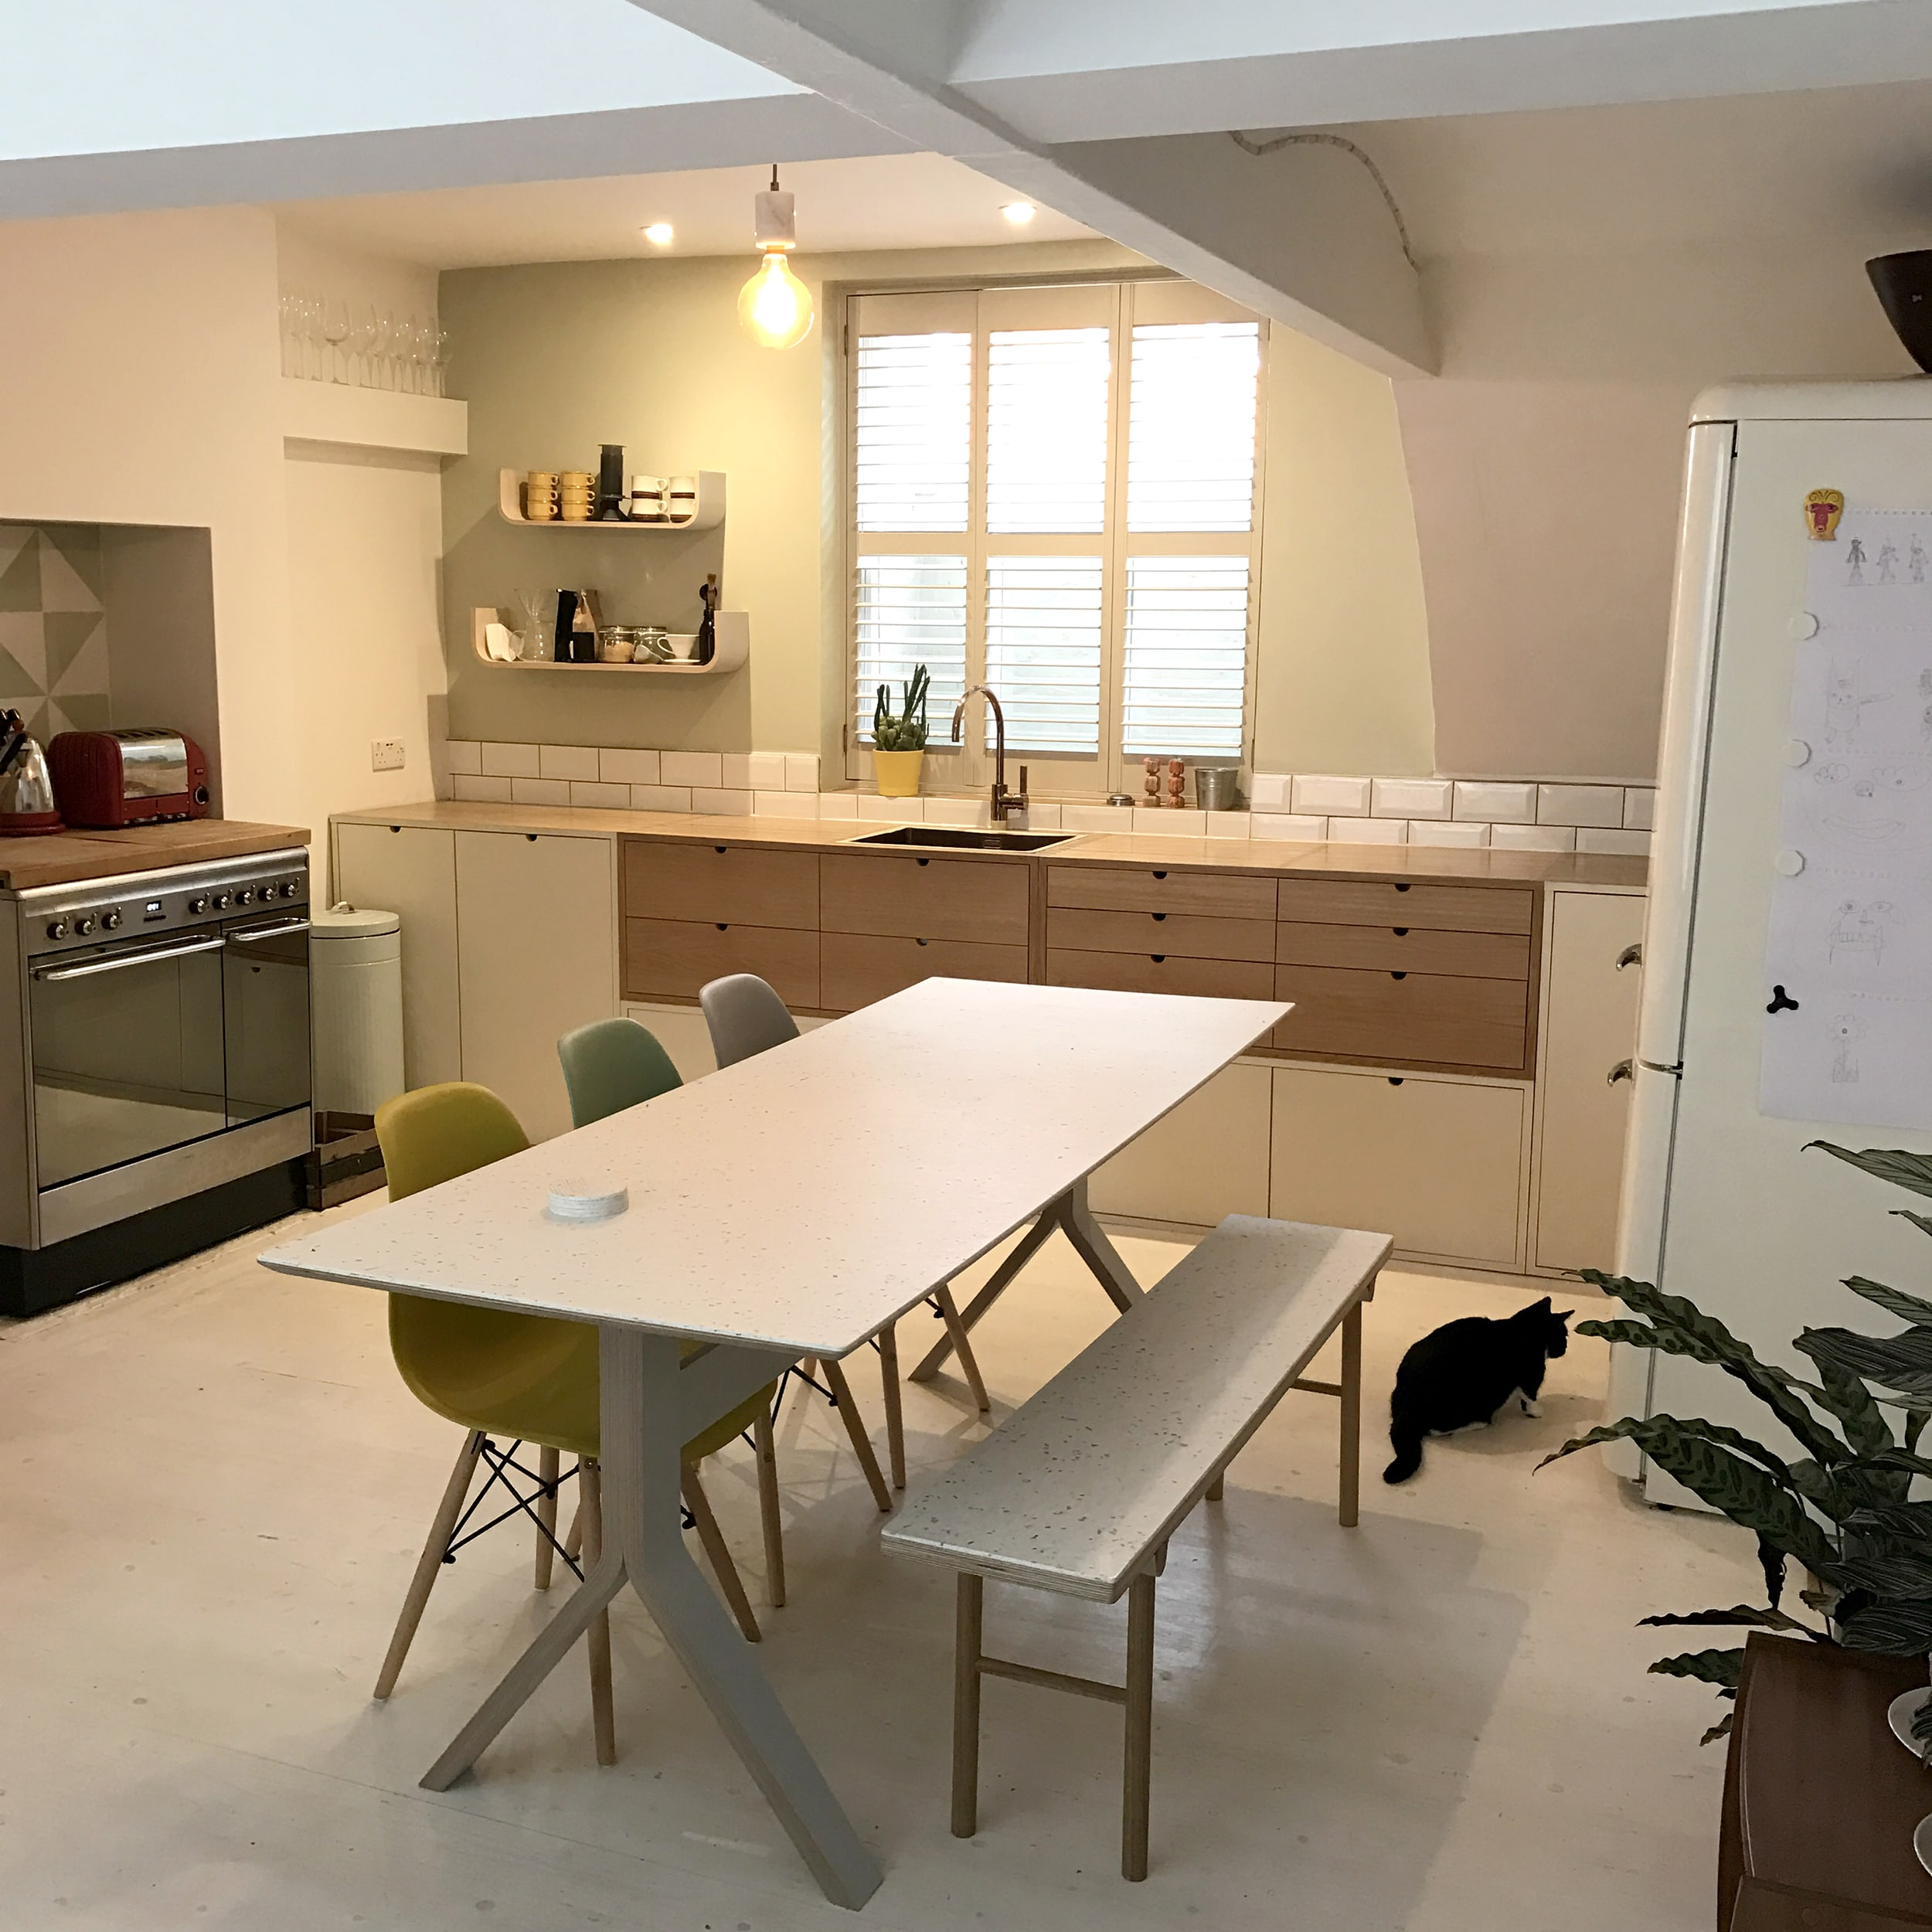 Finger jointed solid oak kitchen in Brighton home by Lozi